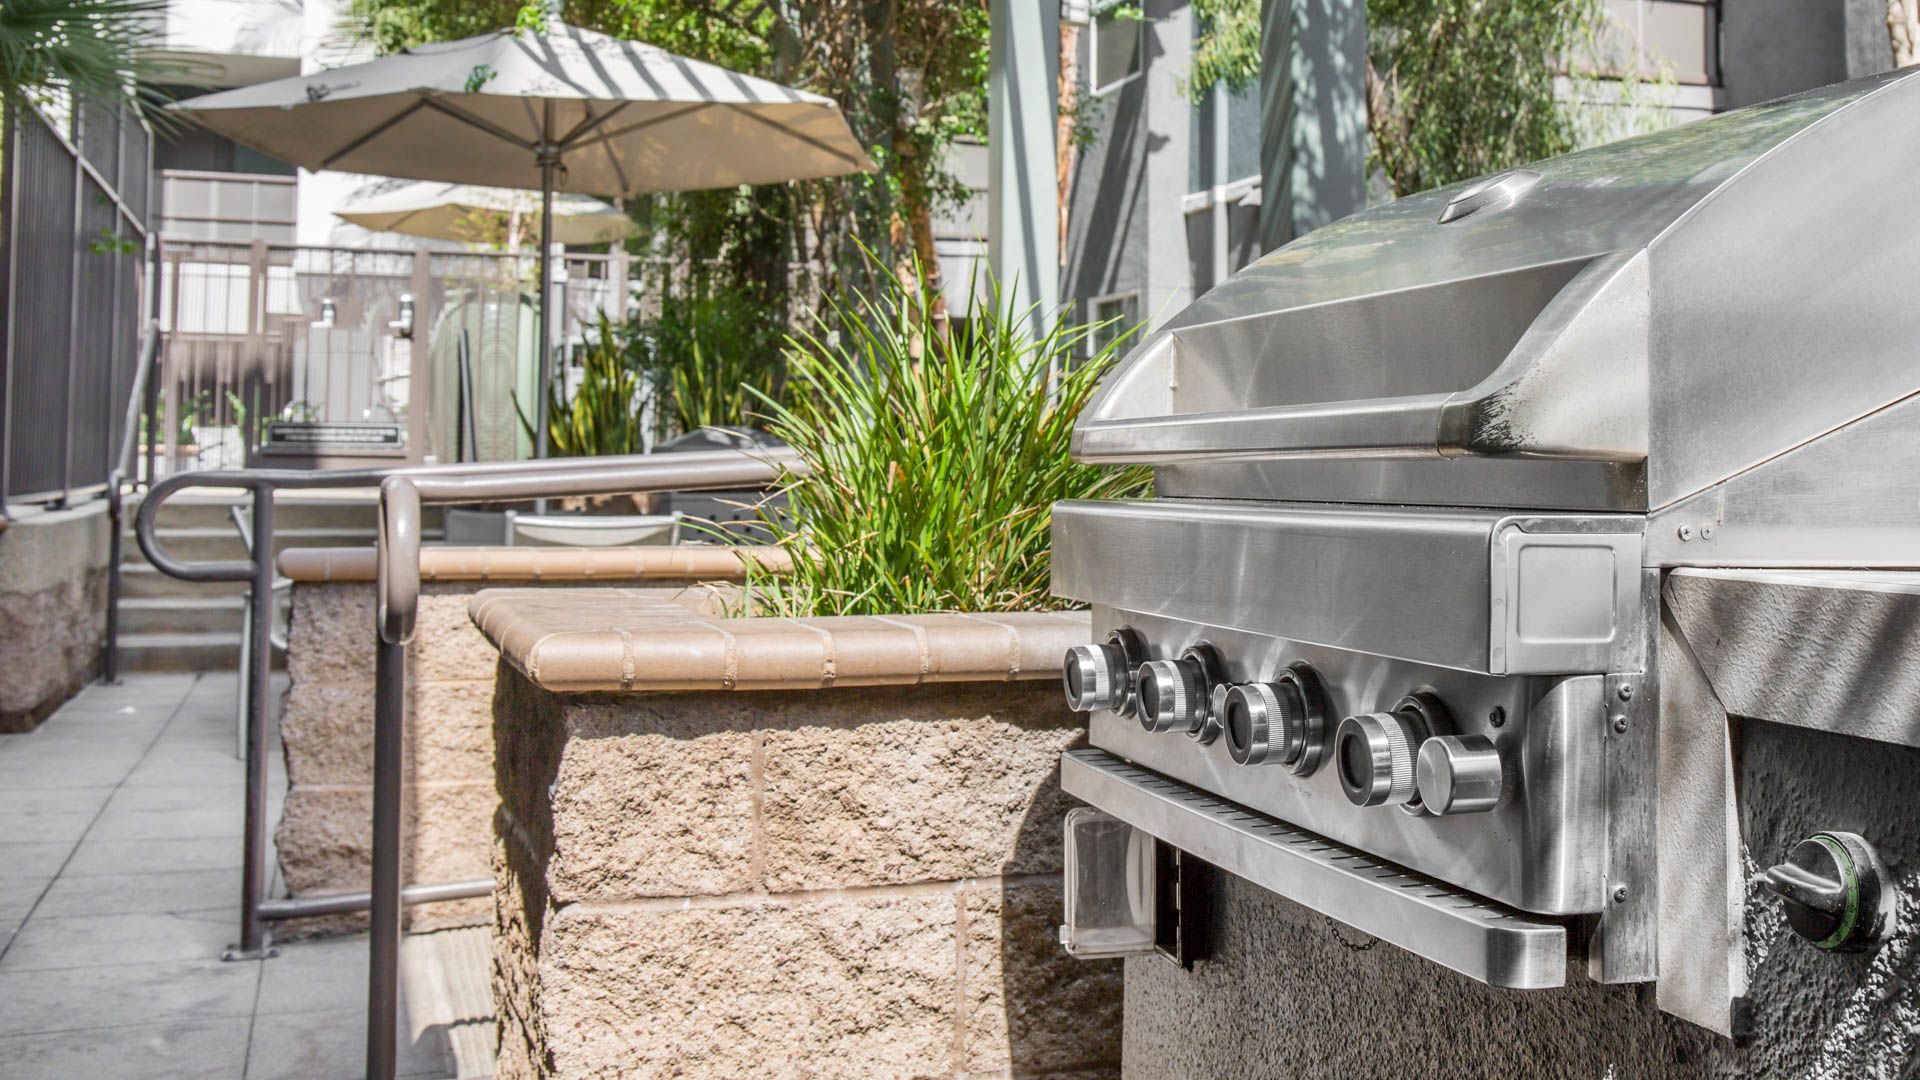 Artisan on 2nd Apartments - Grilling